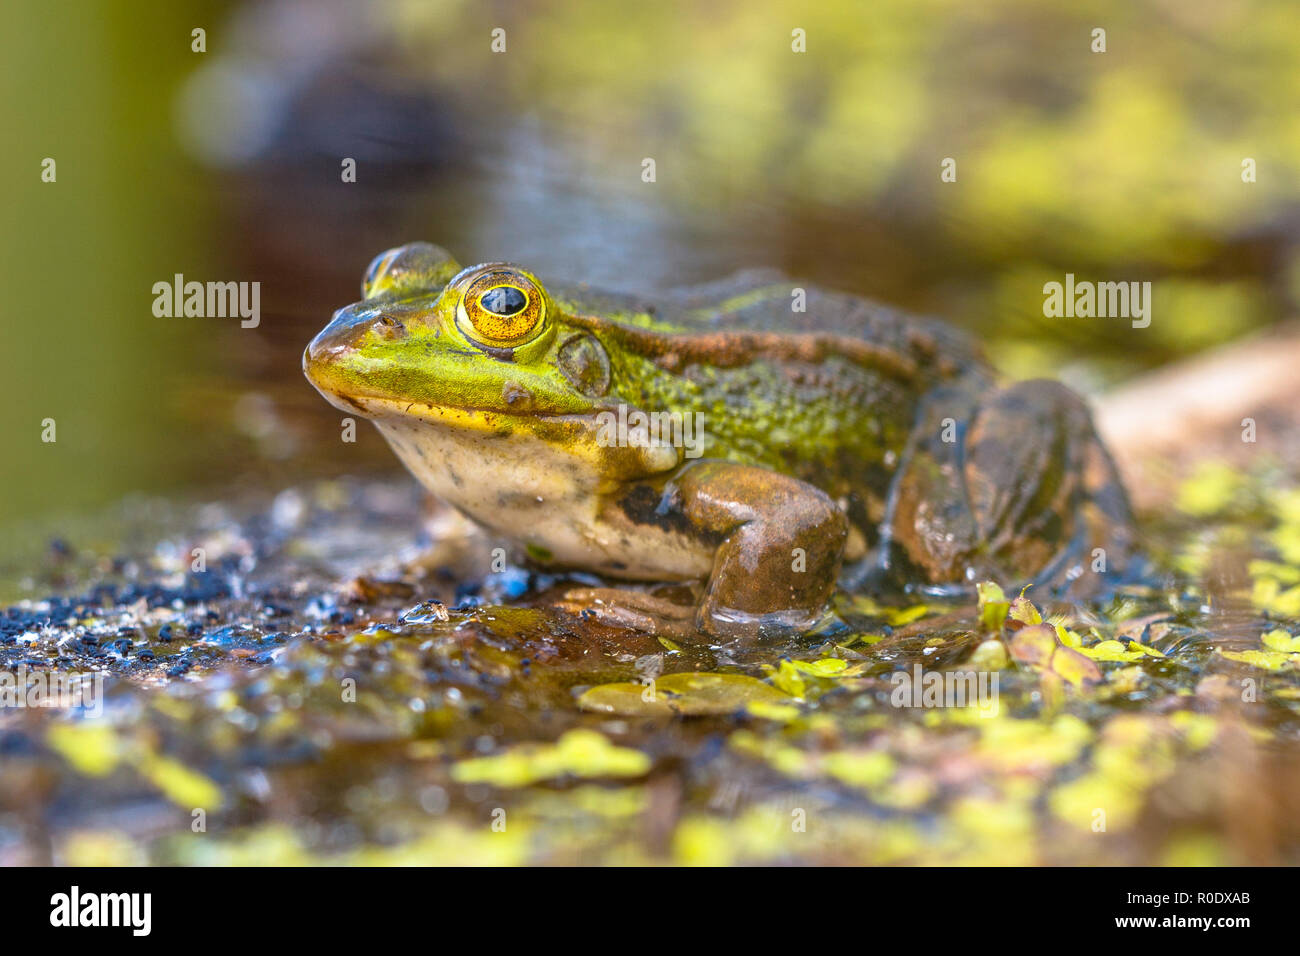 Edible Green Frog (Pelophylax kl. esculentus) on the bank of a pond in Natural Habitat - Stock Image